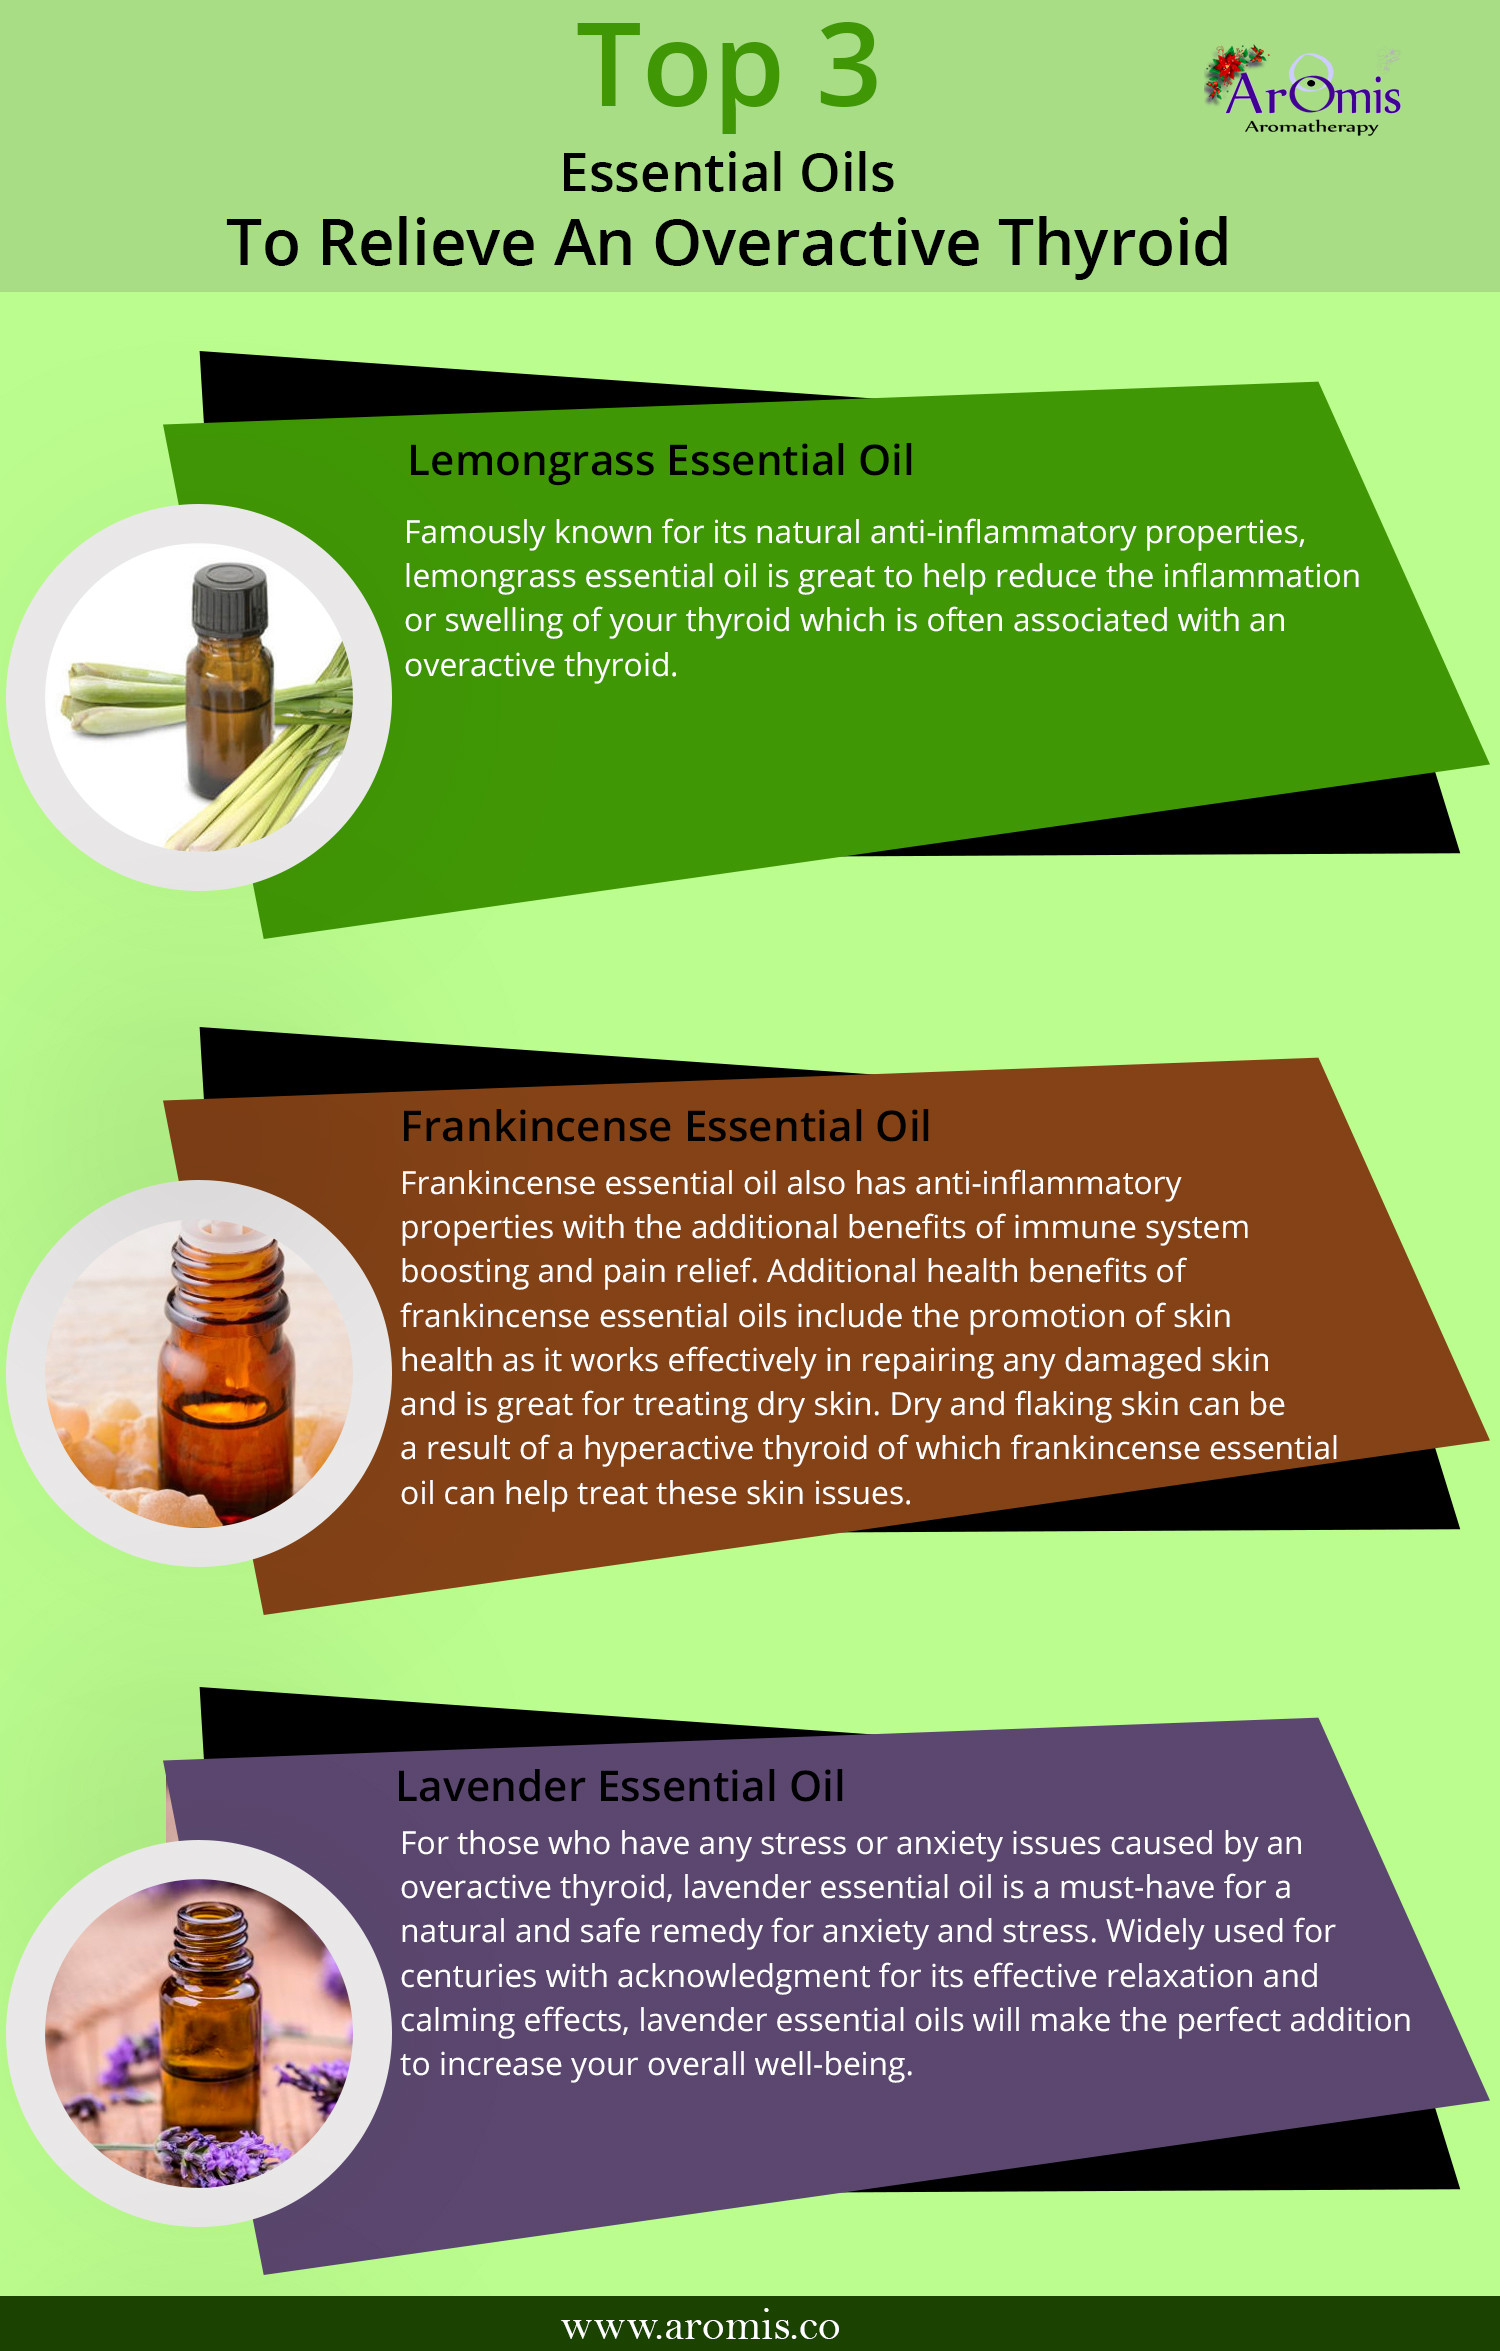 Top 3 Essential oils to relieve an overactive thyroid Infographic